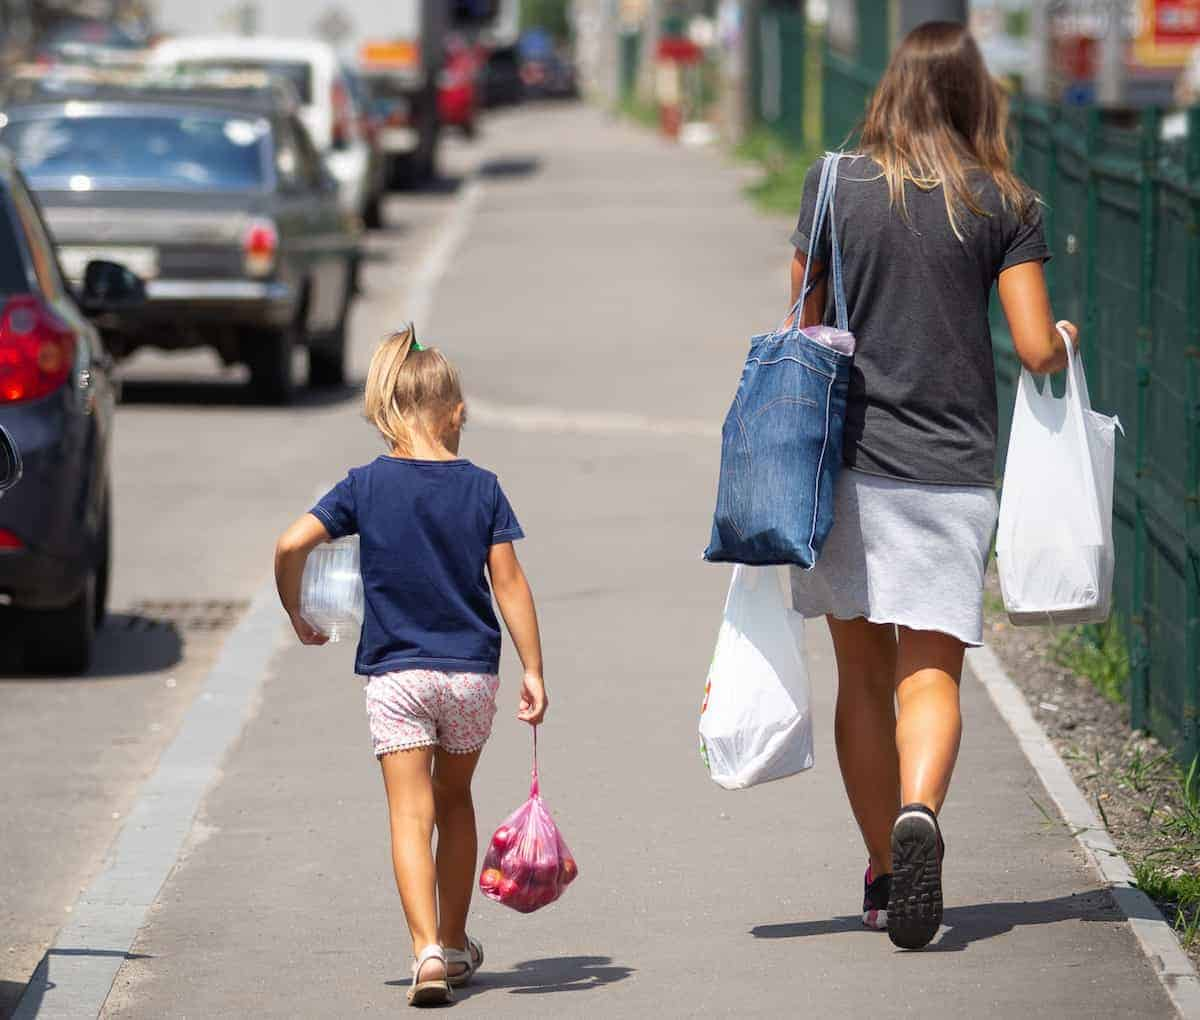 walking with groceries